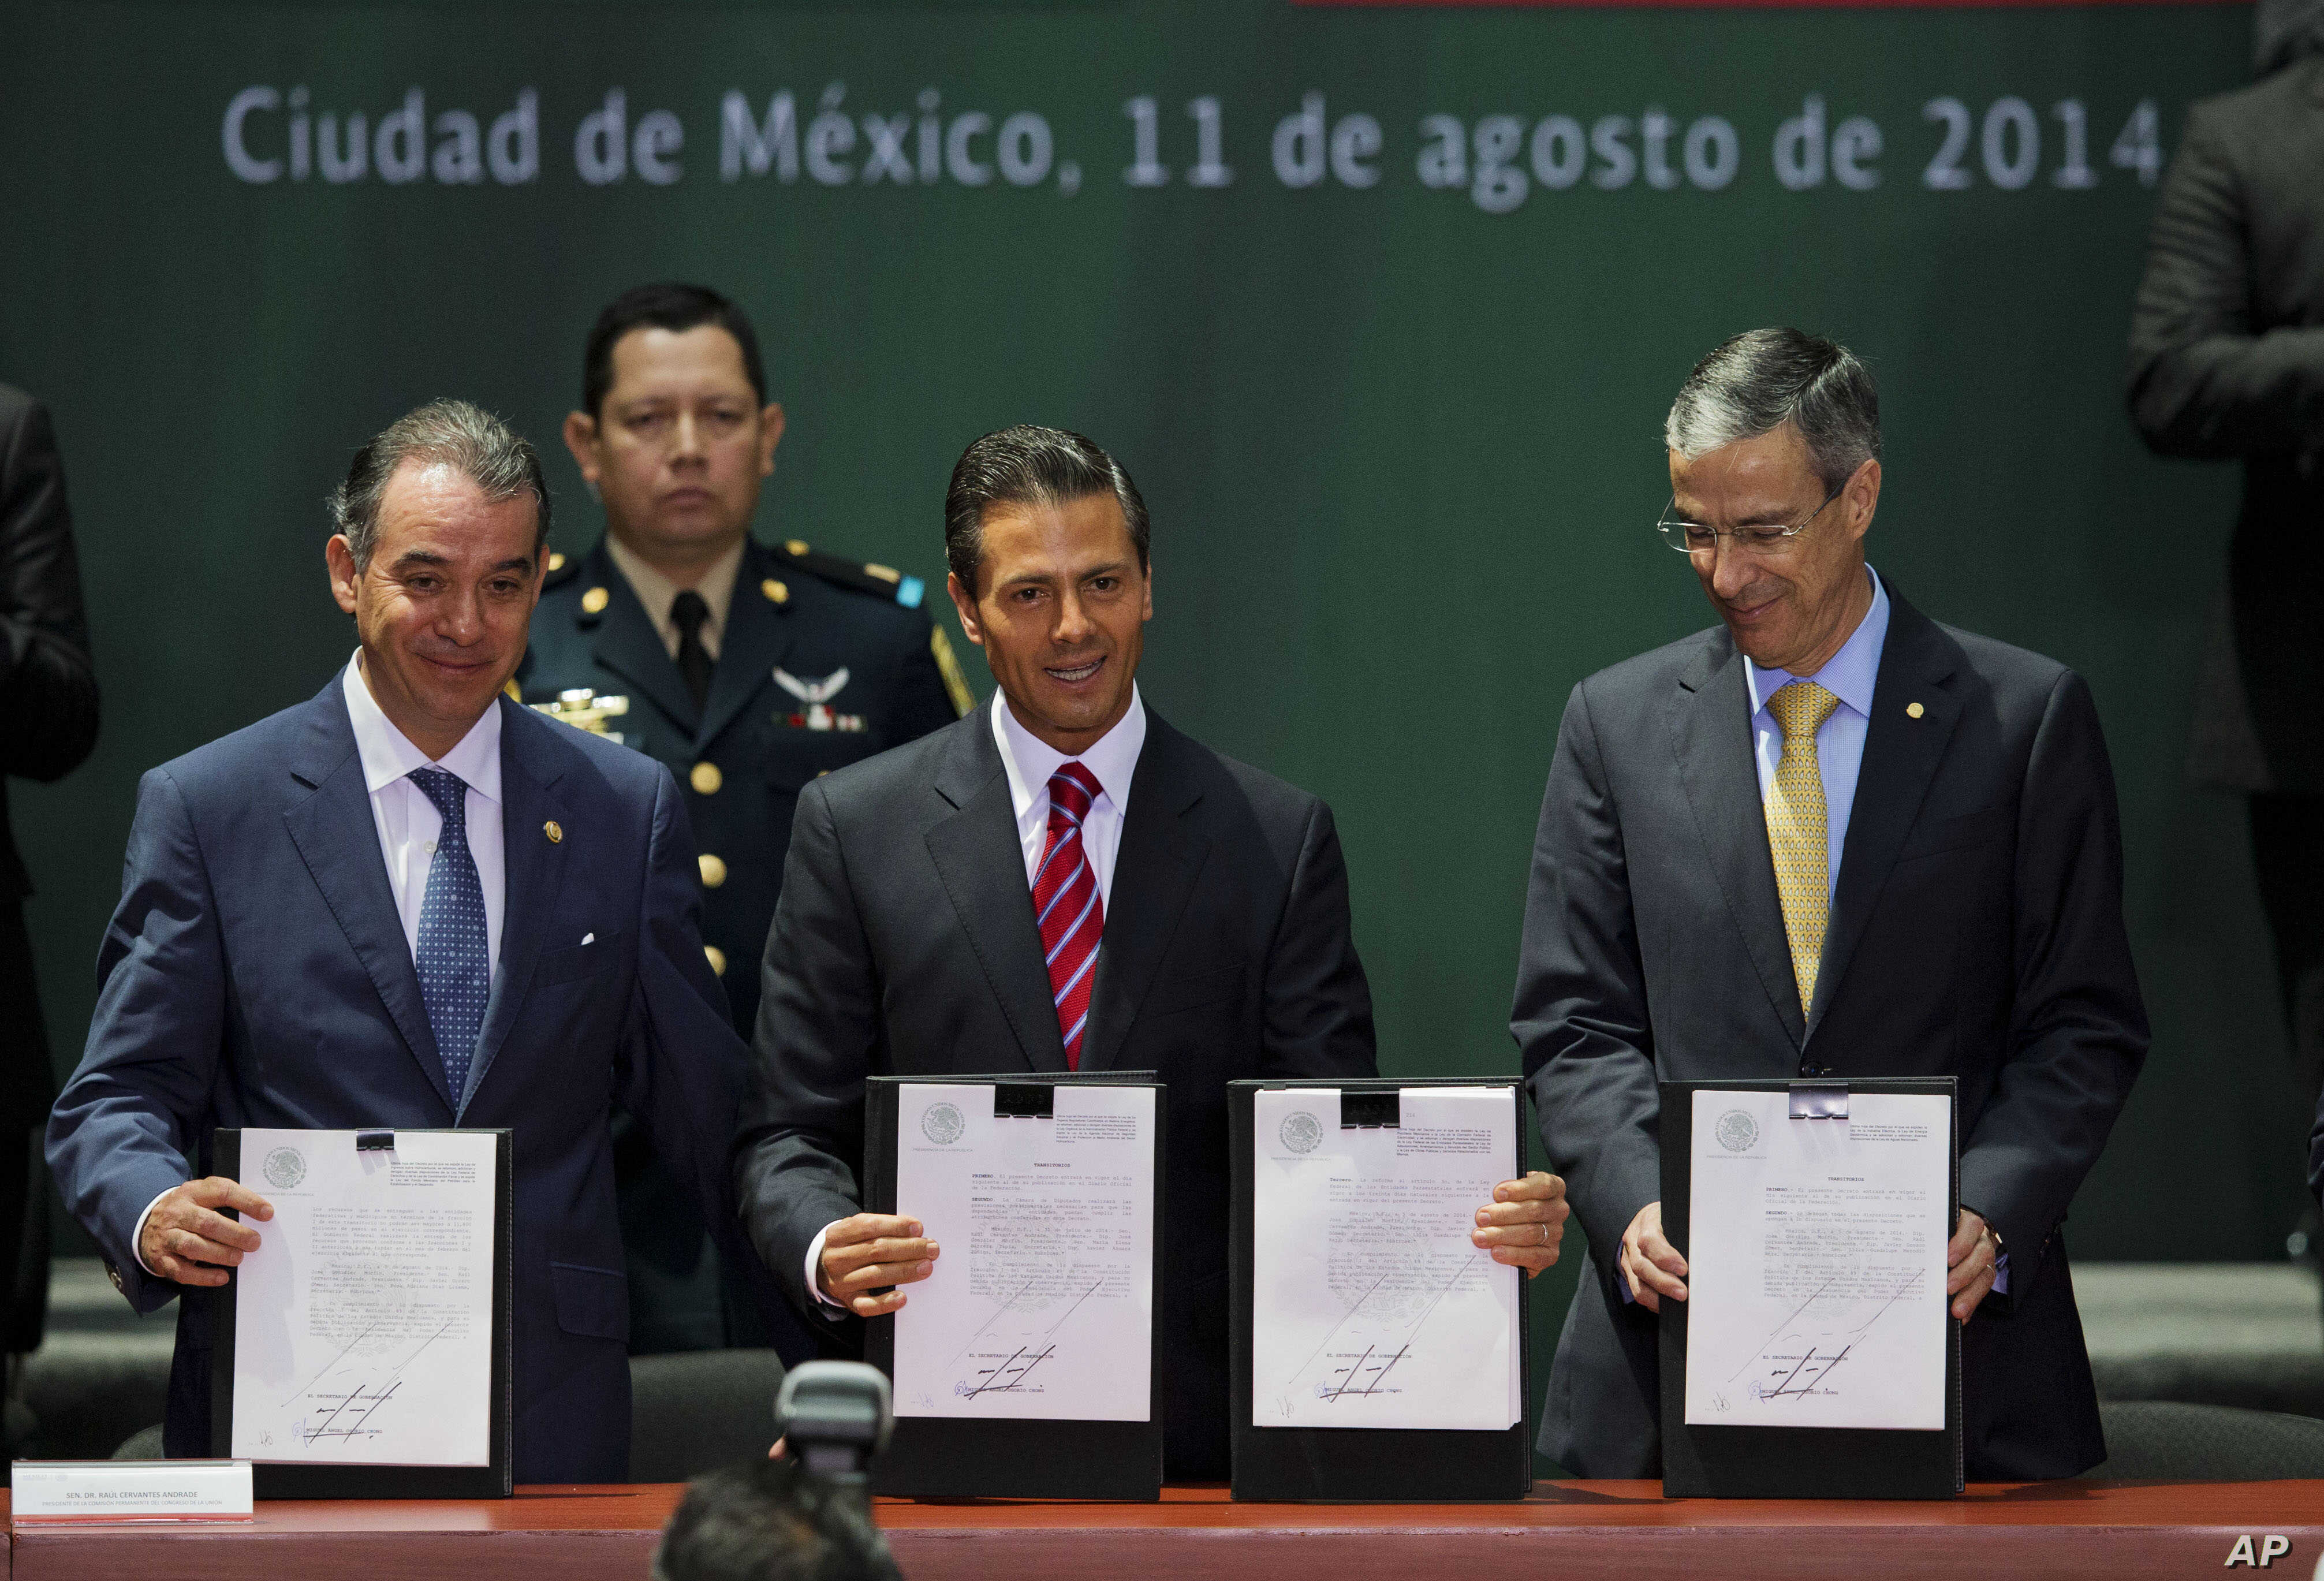 Mexican President Enrique Pena Nieto, center, Senate leader Raul Cervantes Andrade, left, and House Speaker Jose Gonzalez Morfin hold up signed documents at a ceremony to mark the signing of a historic energy reform bill, at the National Palace in Me